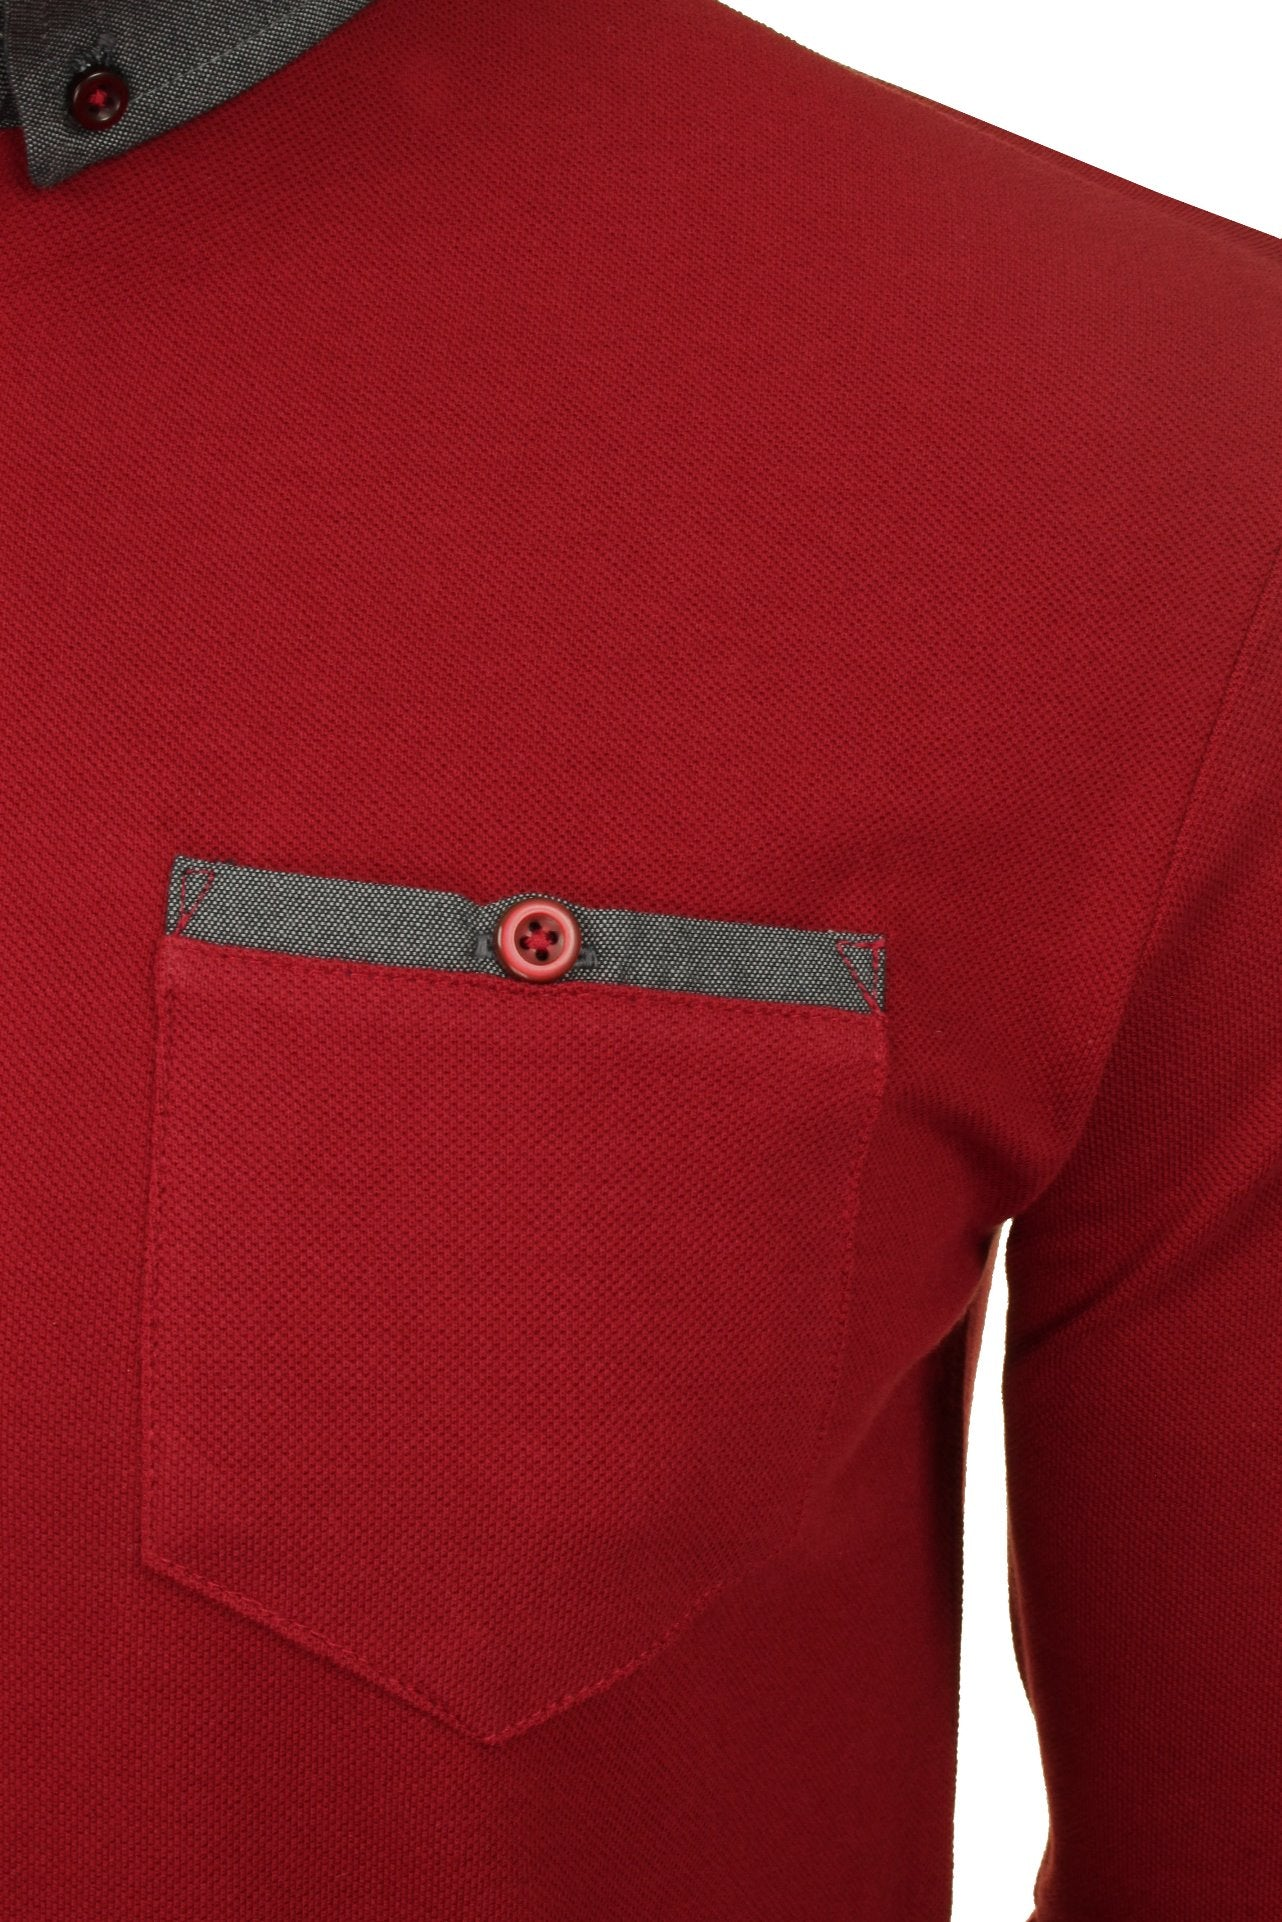 Mens Long Sleeved Button Down Collar Polo T-Shirt by Xact_02_Xp1026_Burgundy